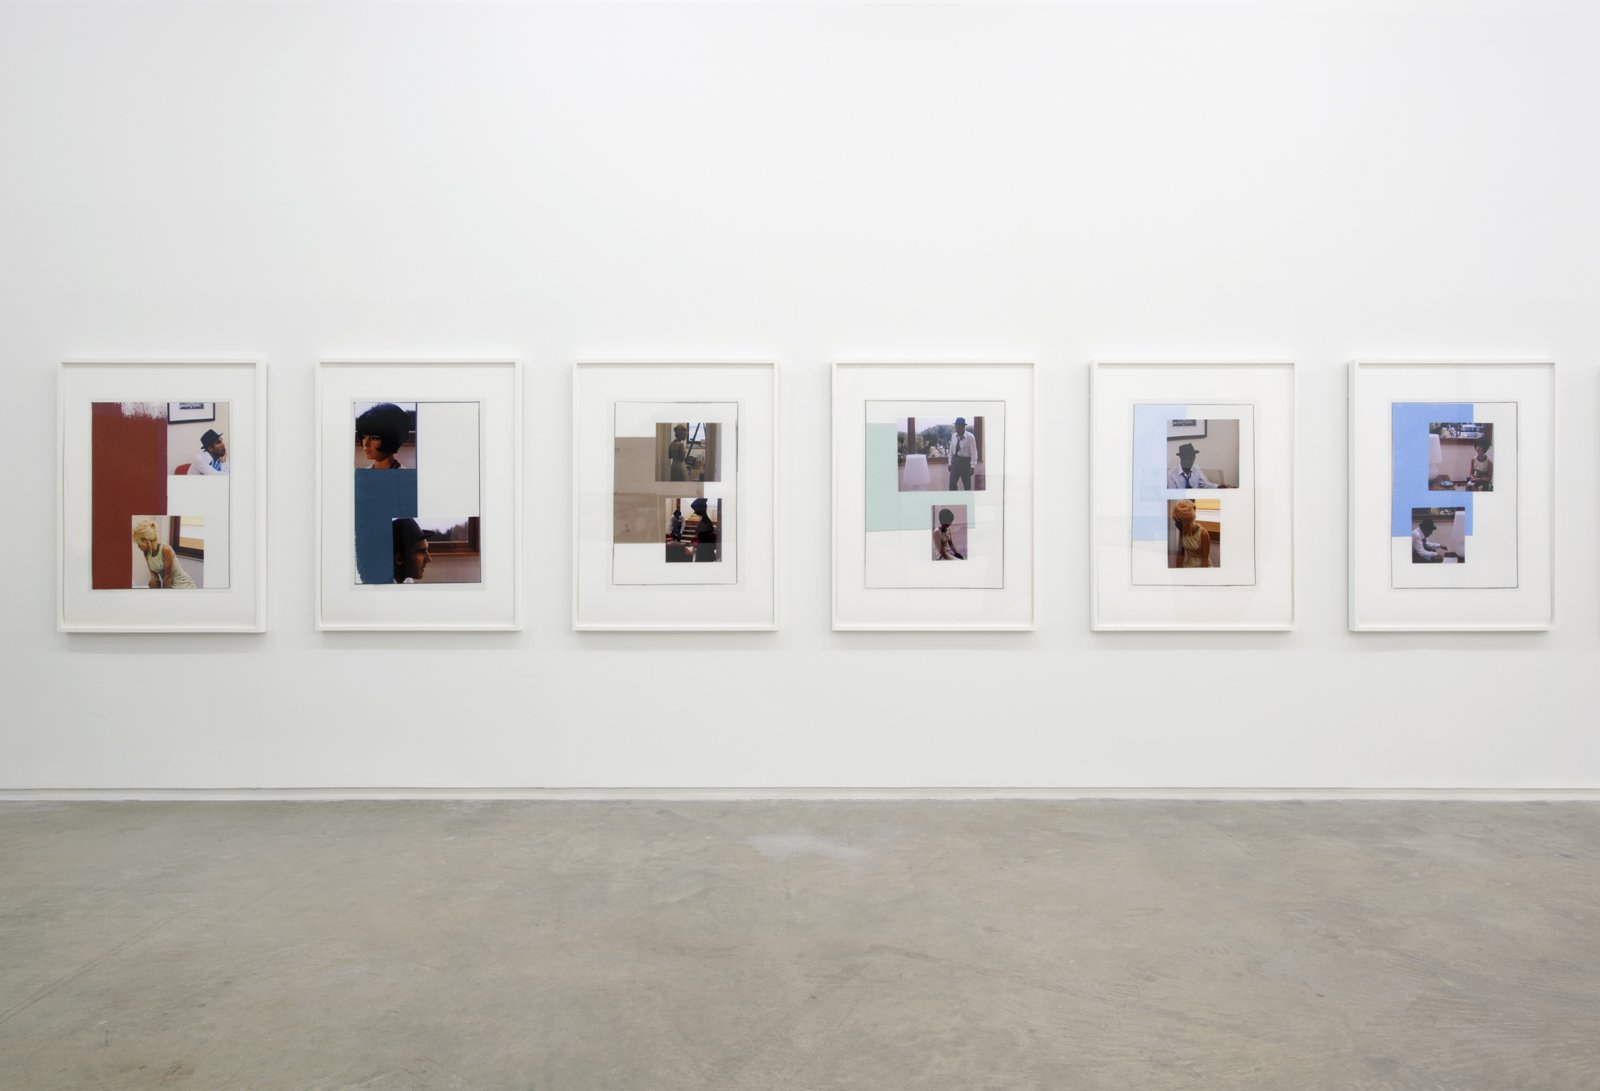 Ian Wallace, installation view, Masculin/Féminin, Catriona Jeffries, 2012 ​​ by Ian Wallace